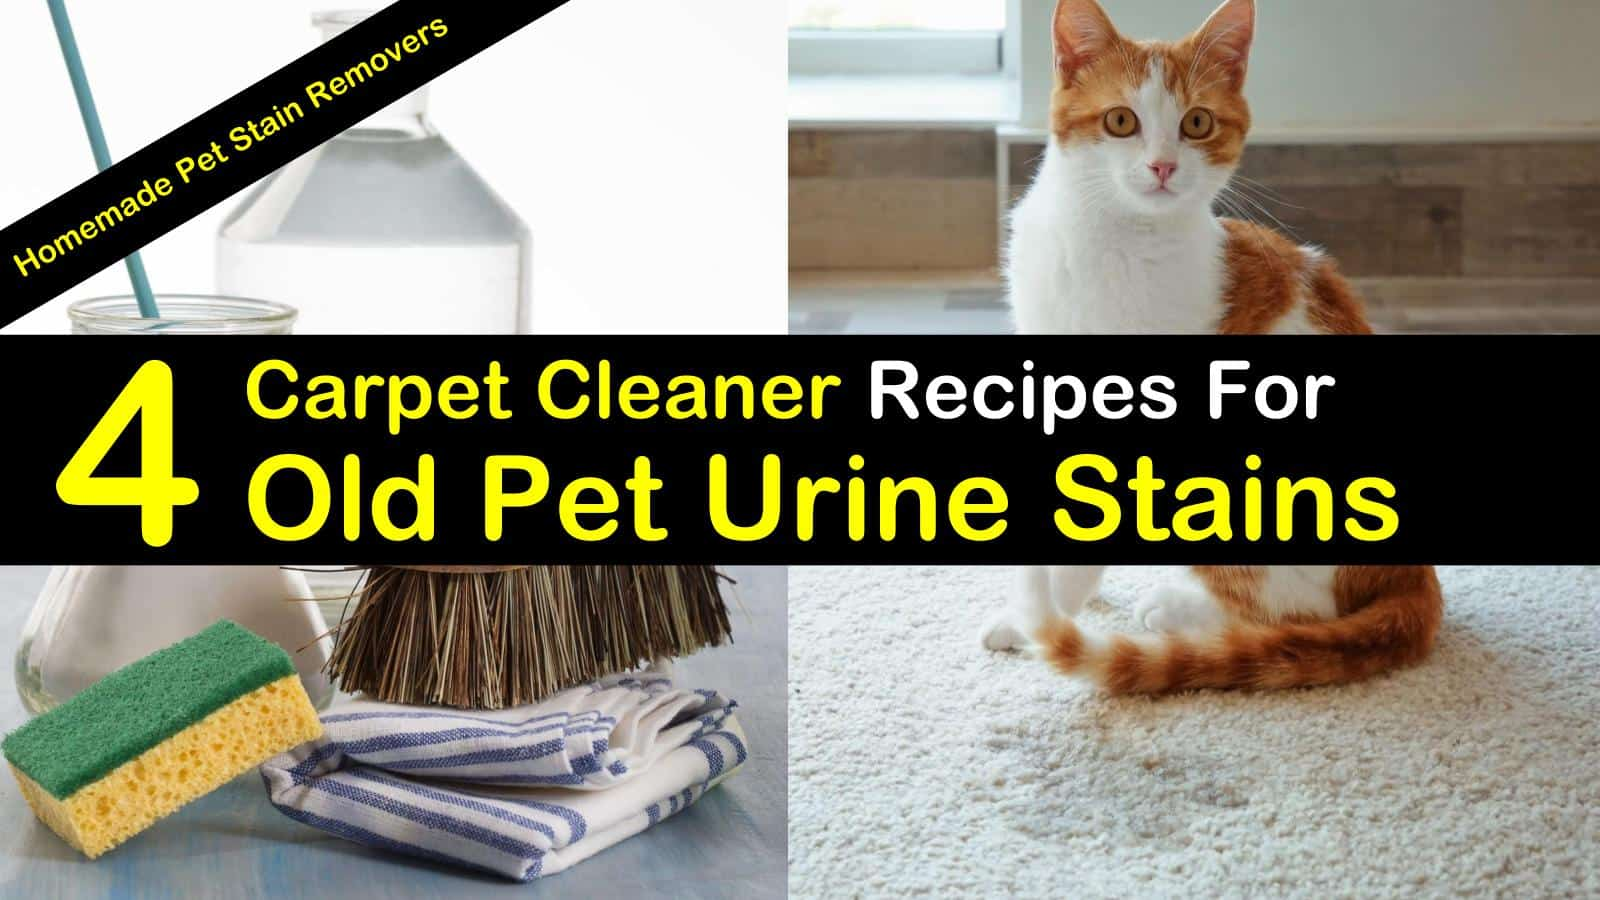 4 Best Carpet Cleaner Recipes For Old Pet Urine Stains